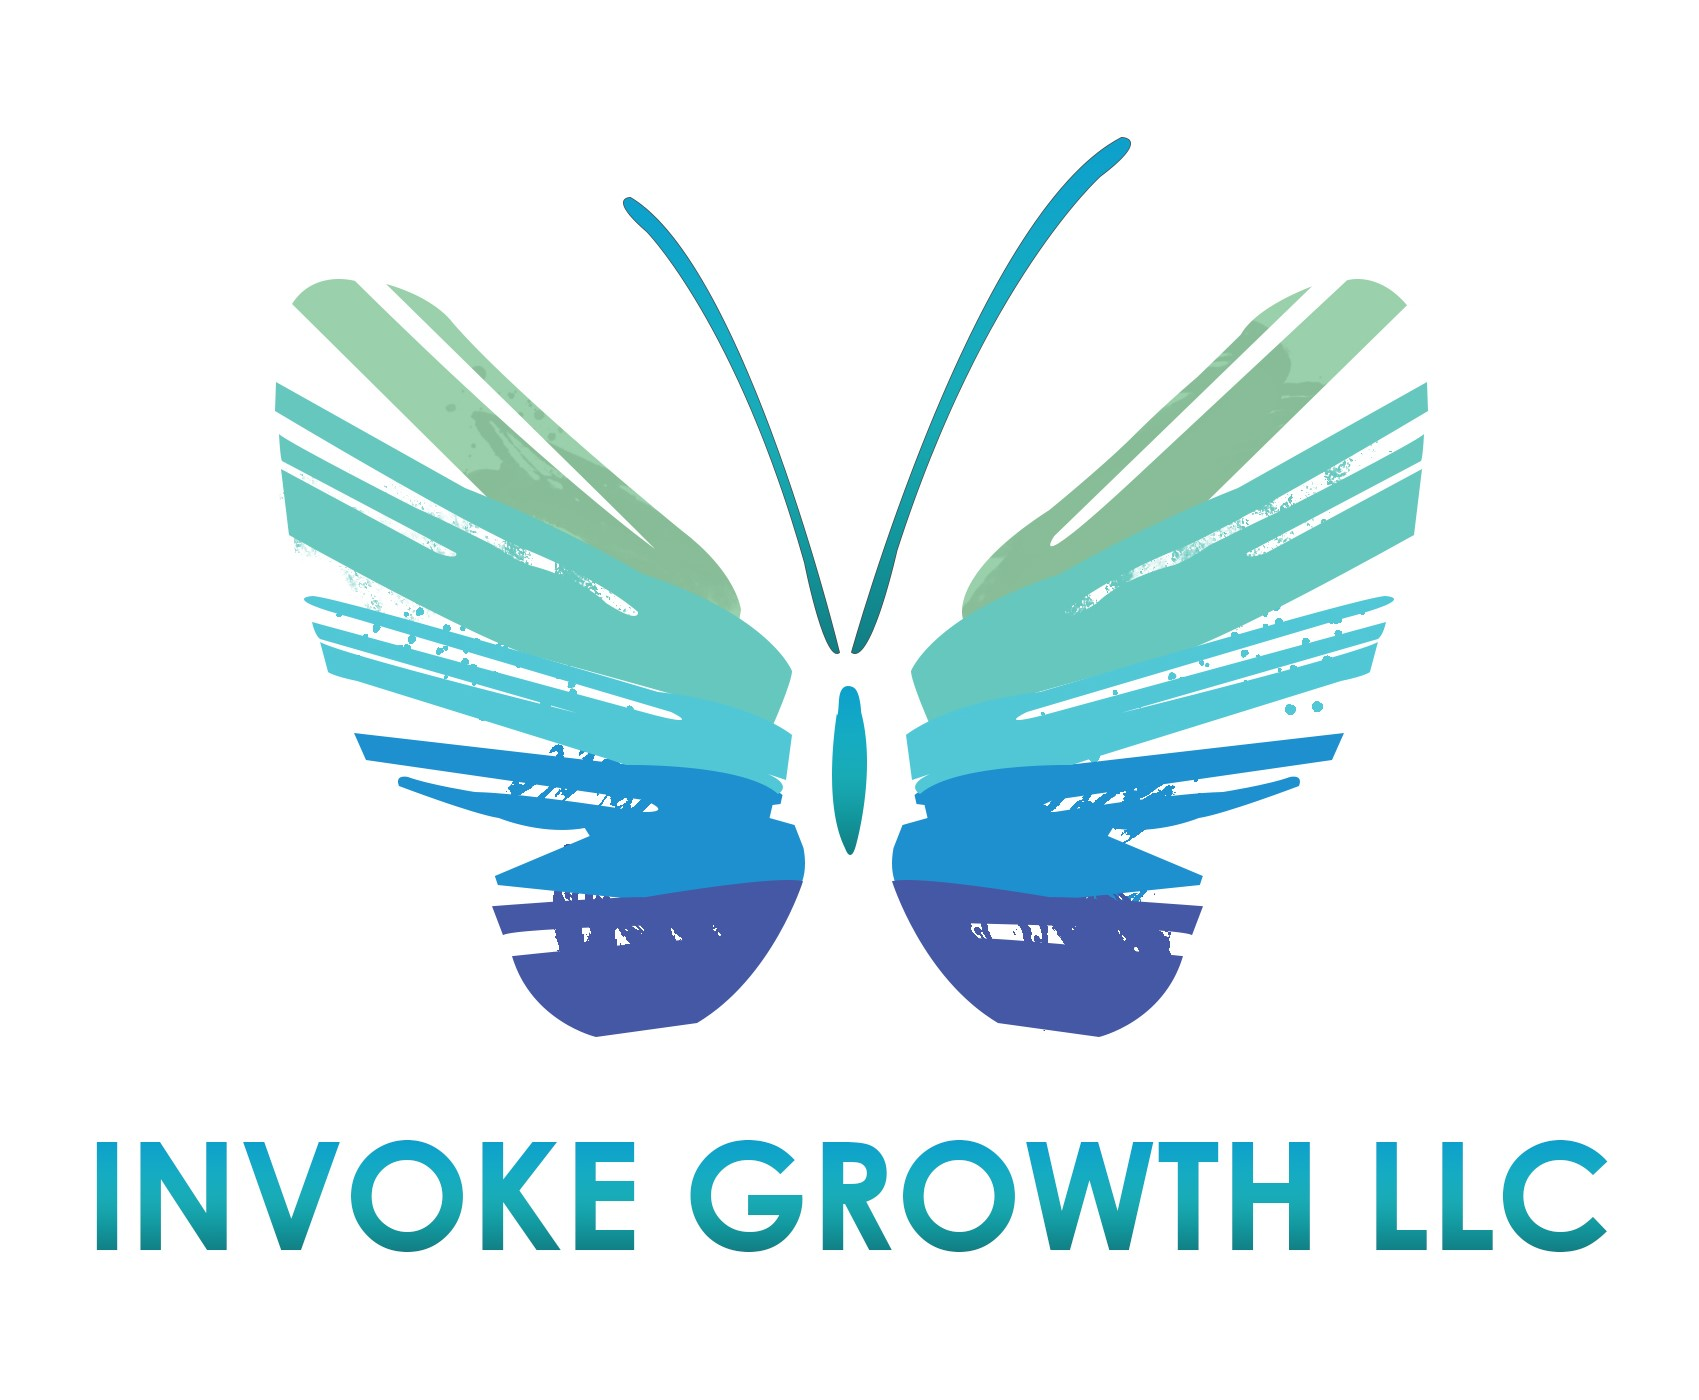 Invoke Growth LLC, Christian-based life coaching